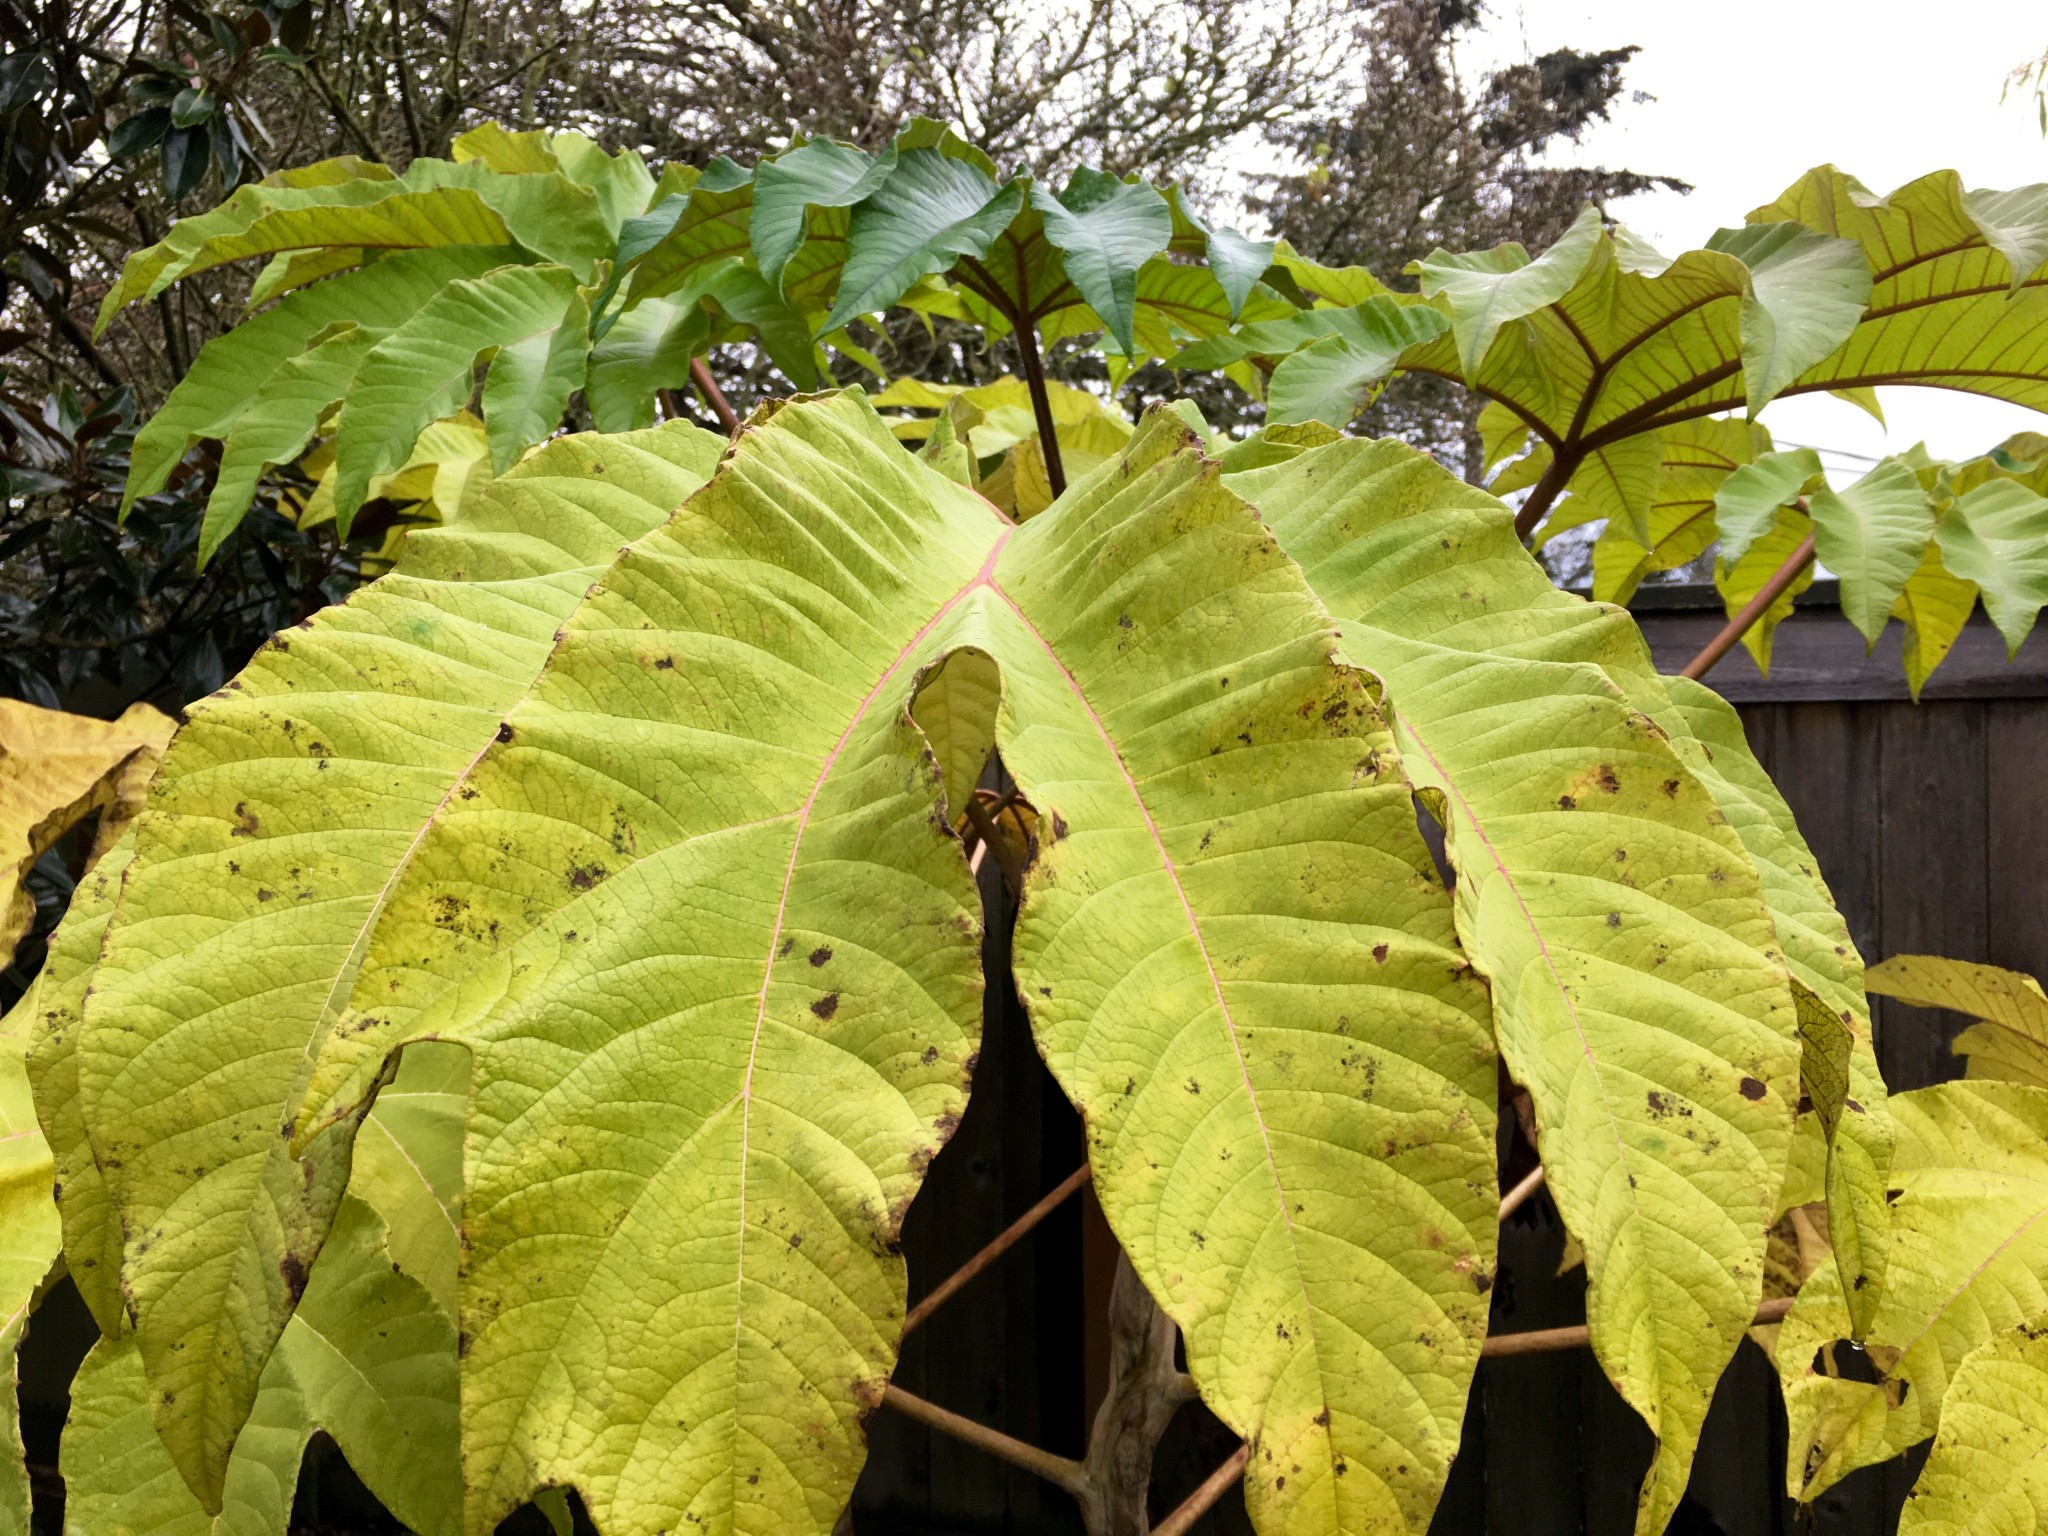 Tetrapanax in less protected location fading faster.